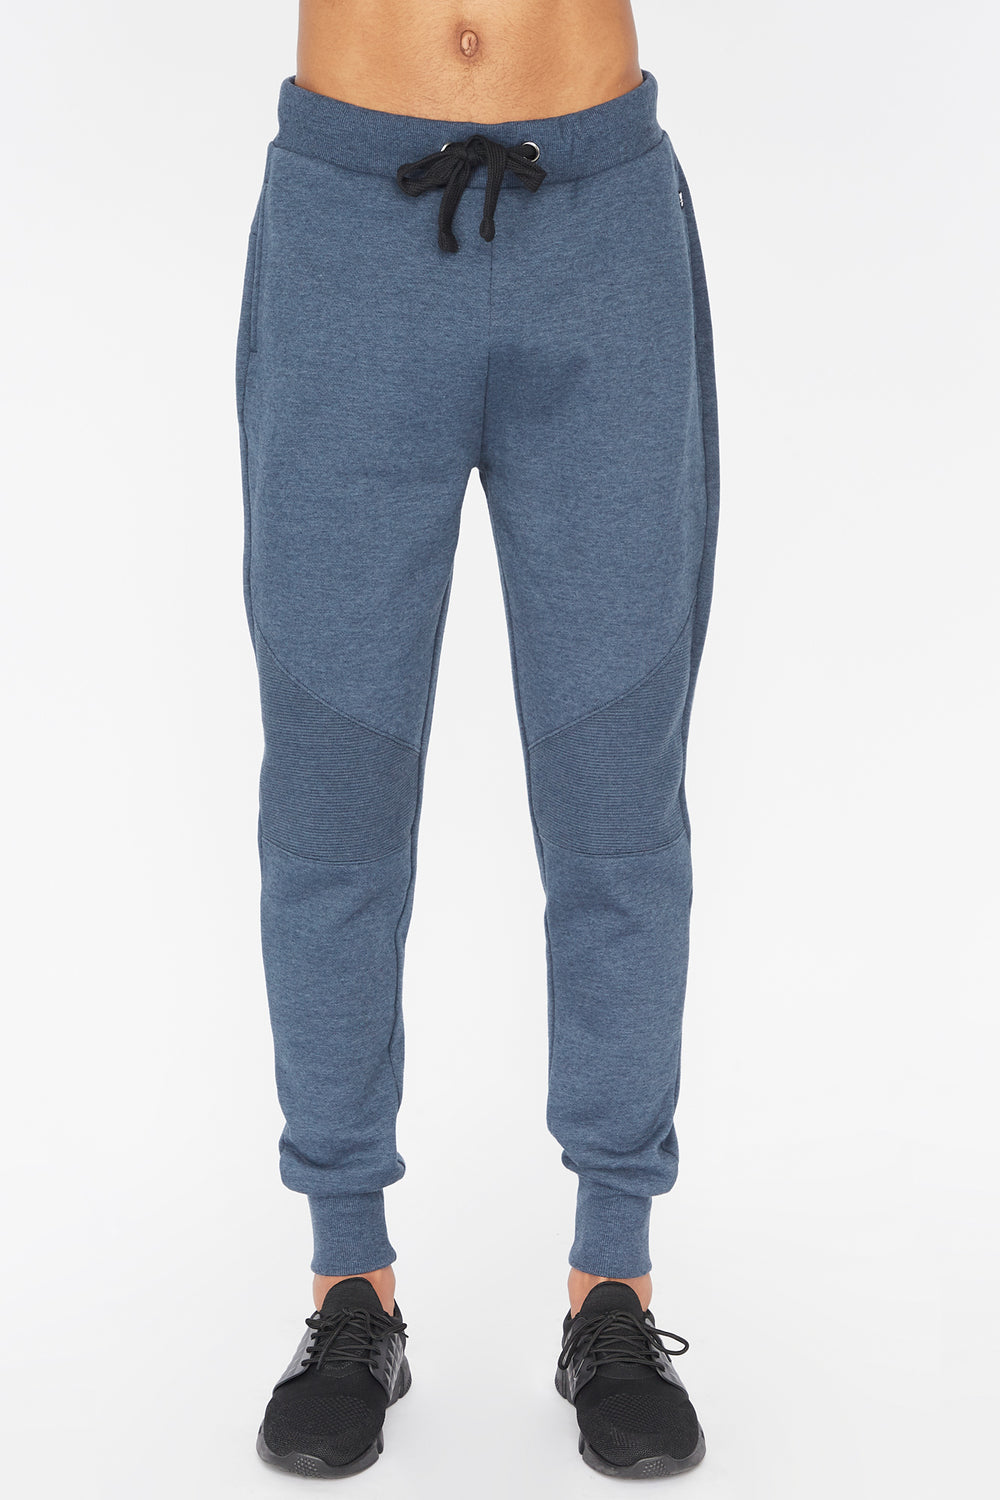 West49 Mens Solid Moto Jogger Denim Blue